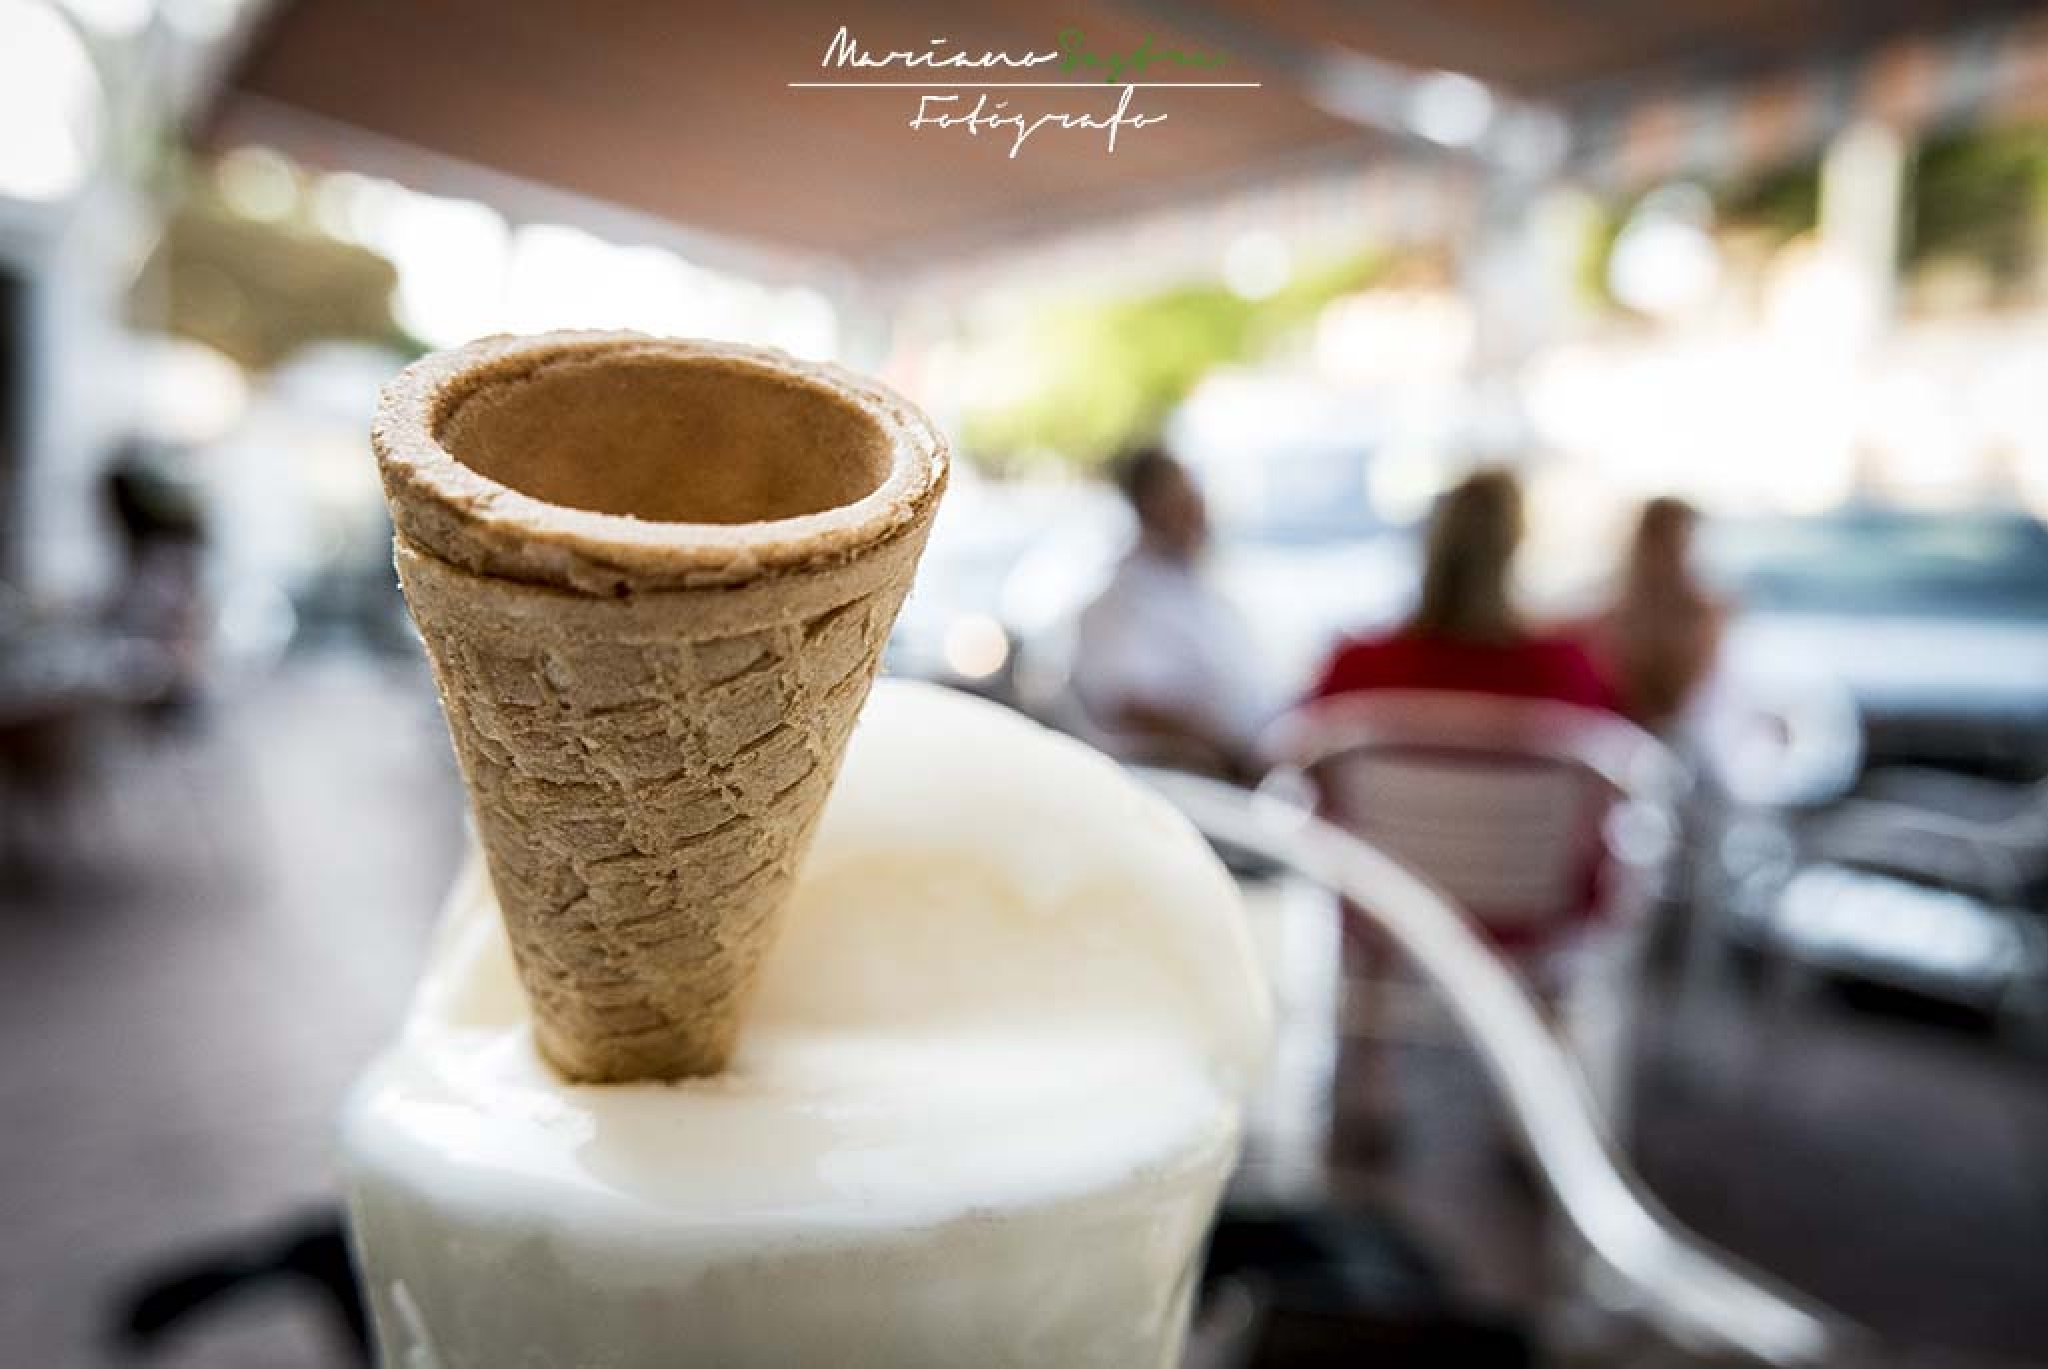 Just an Icecream by Mariano Sastre